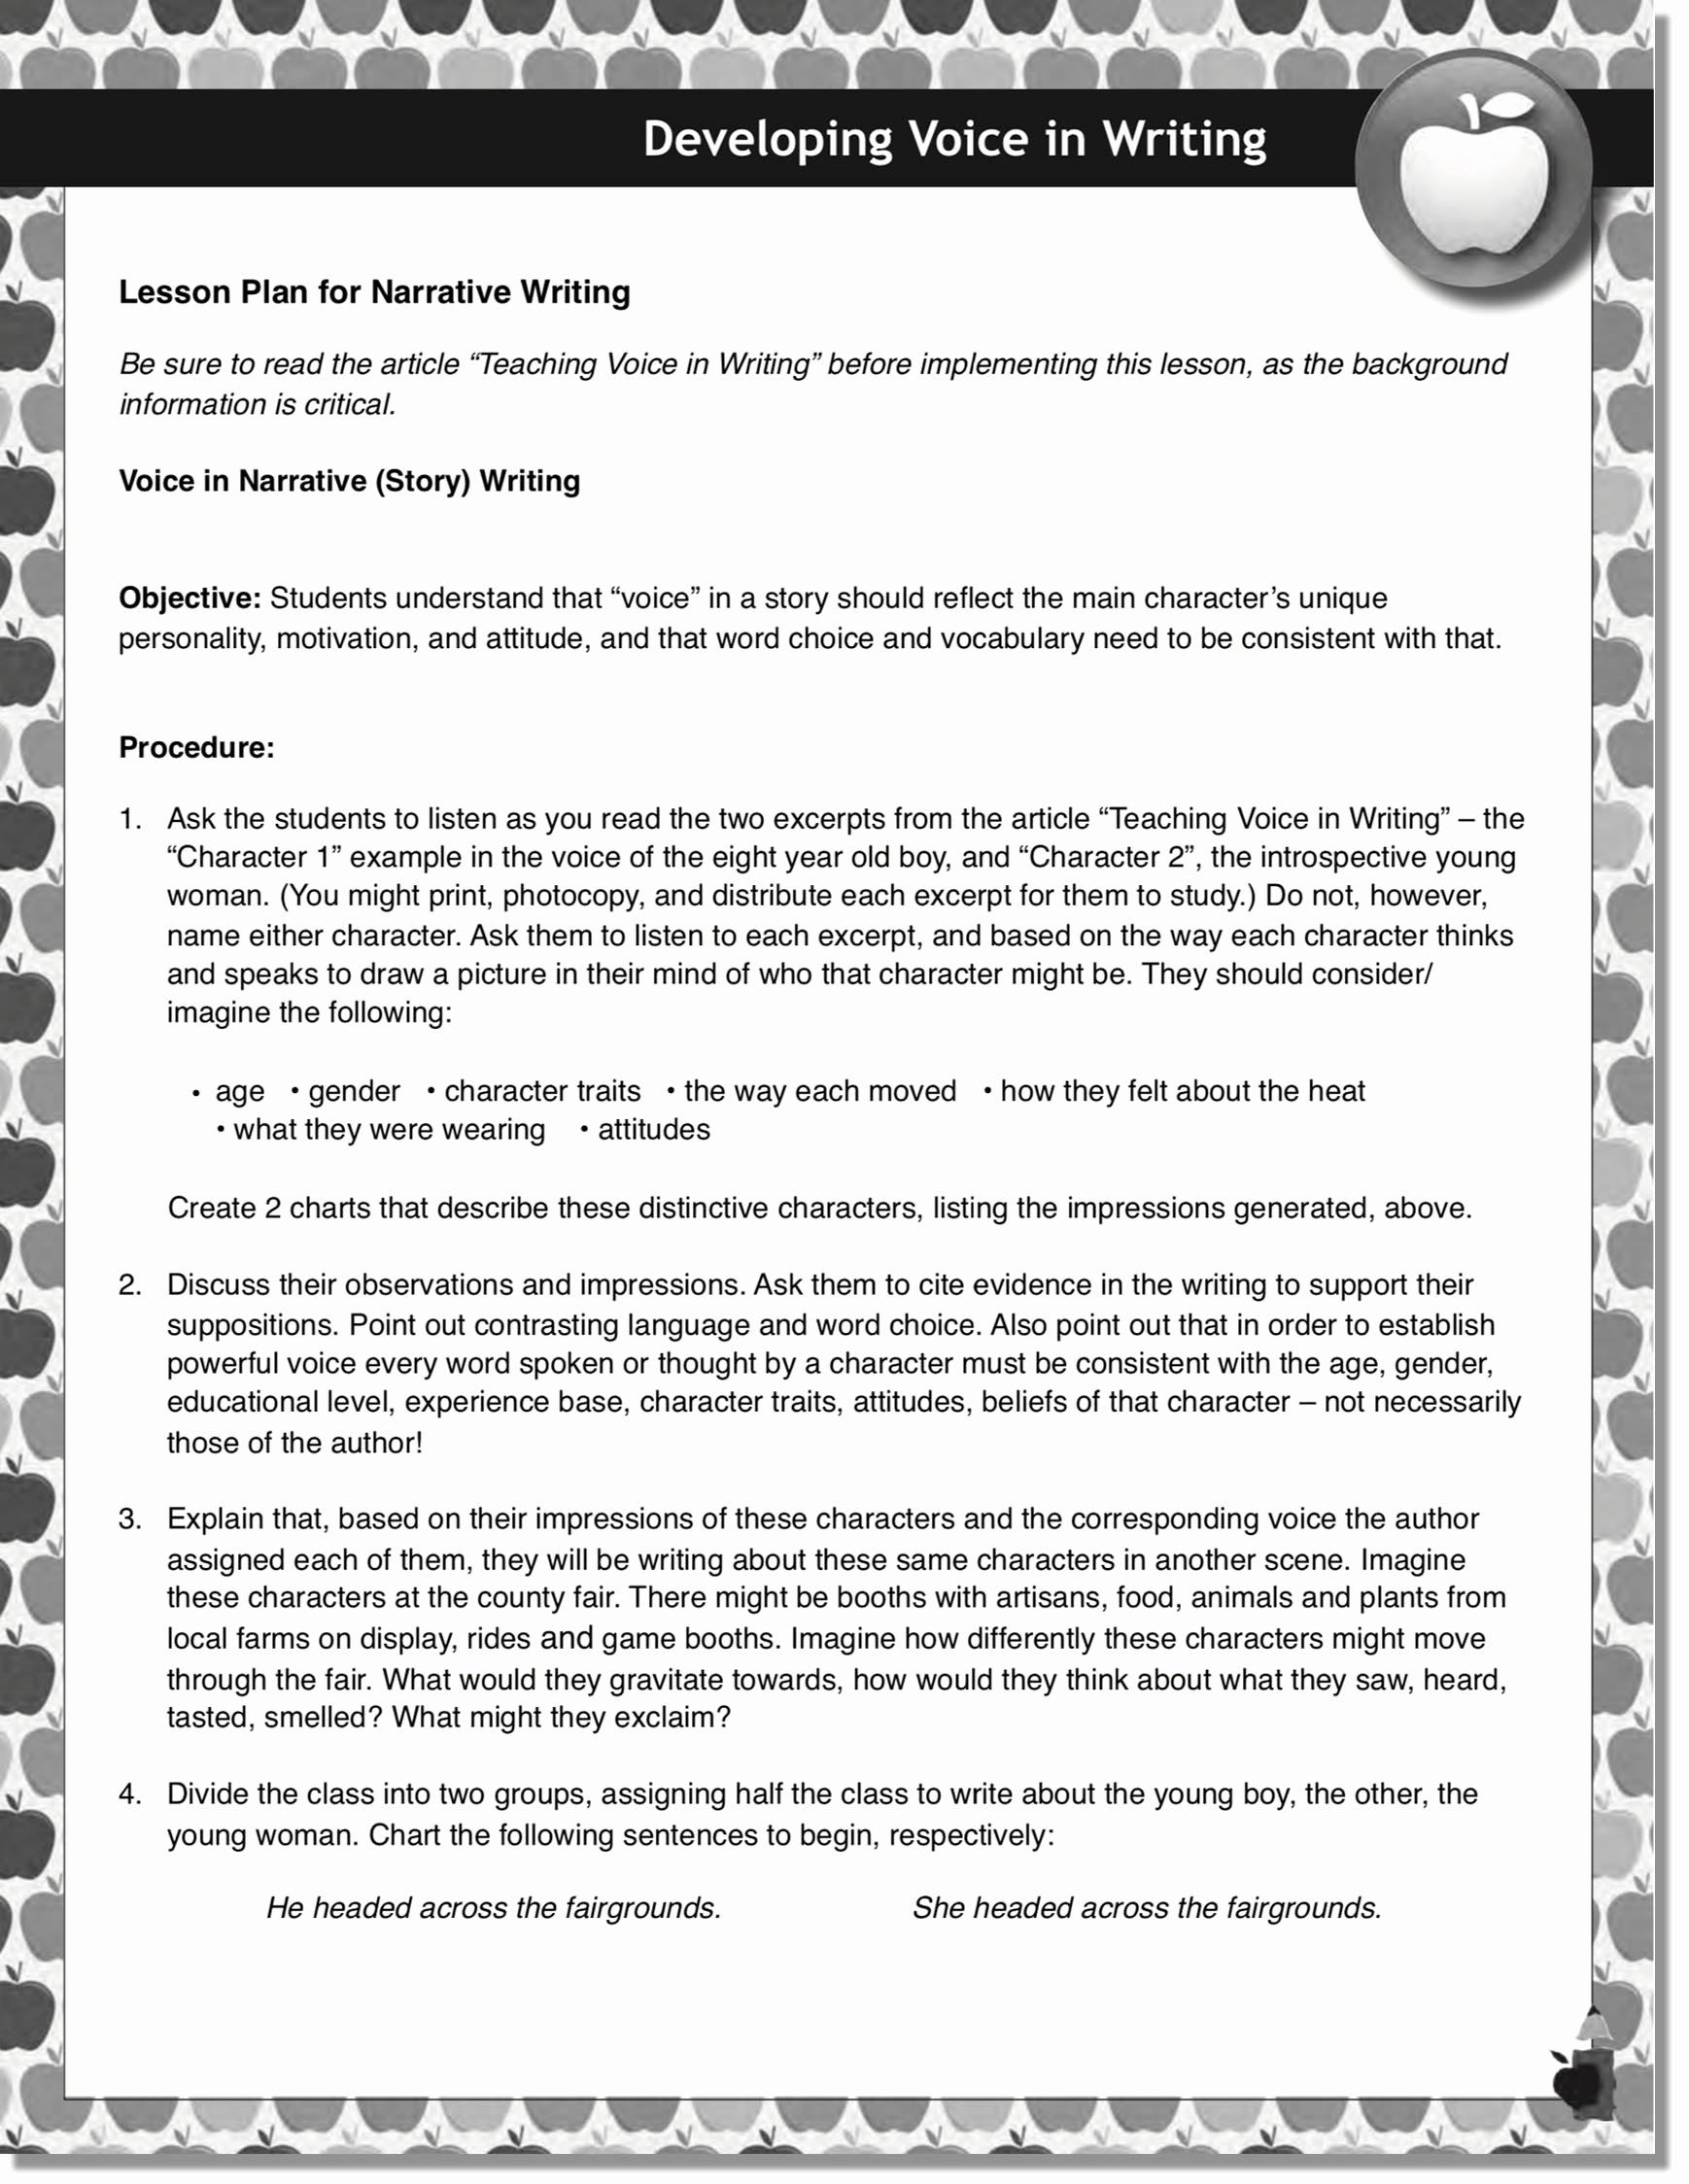 Vocal Lesson Plan Template Elegant the 2 Voices In Writing and How to Teach them Empowering